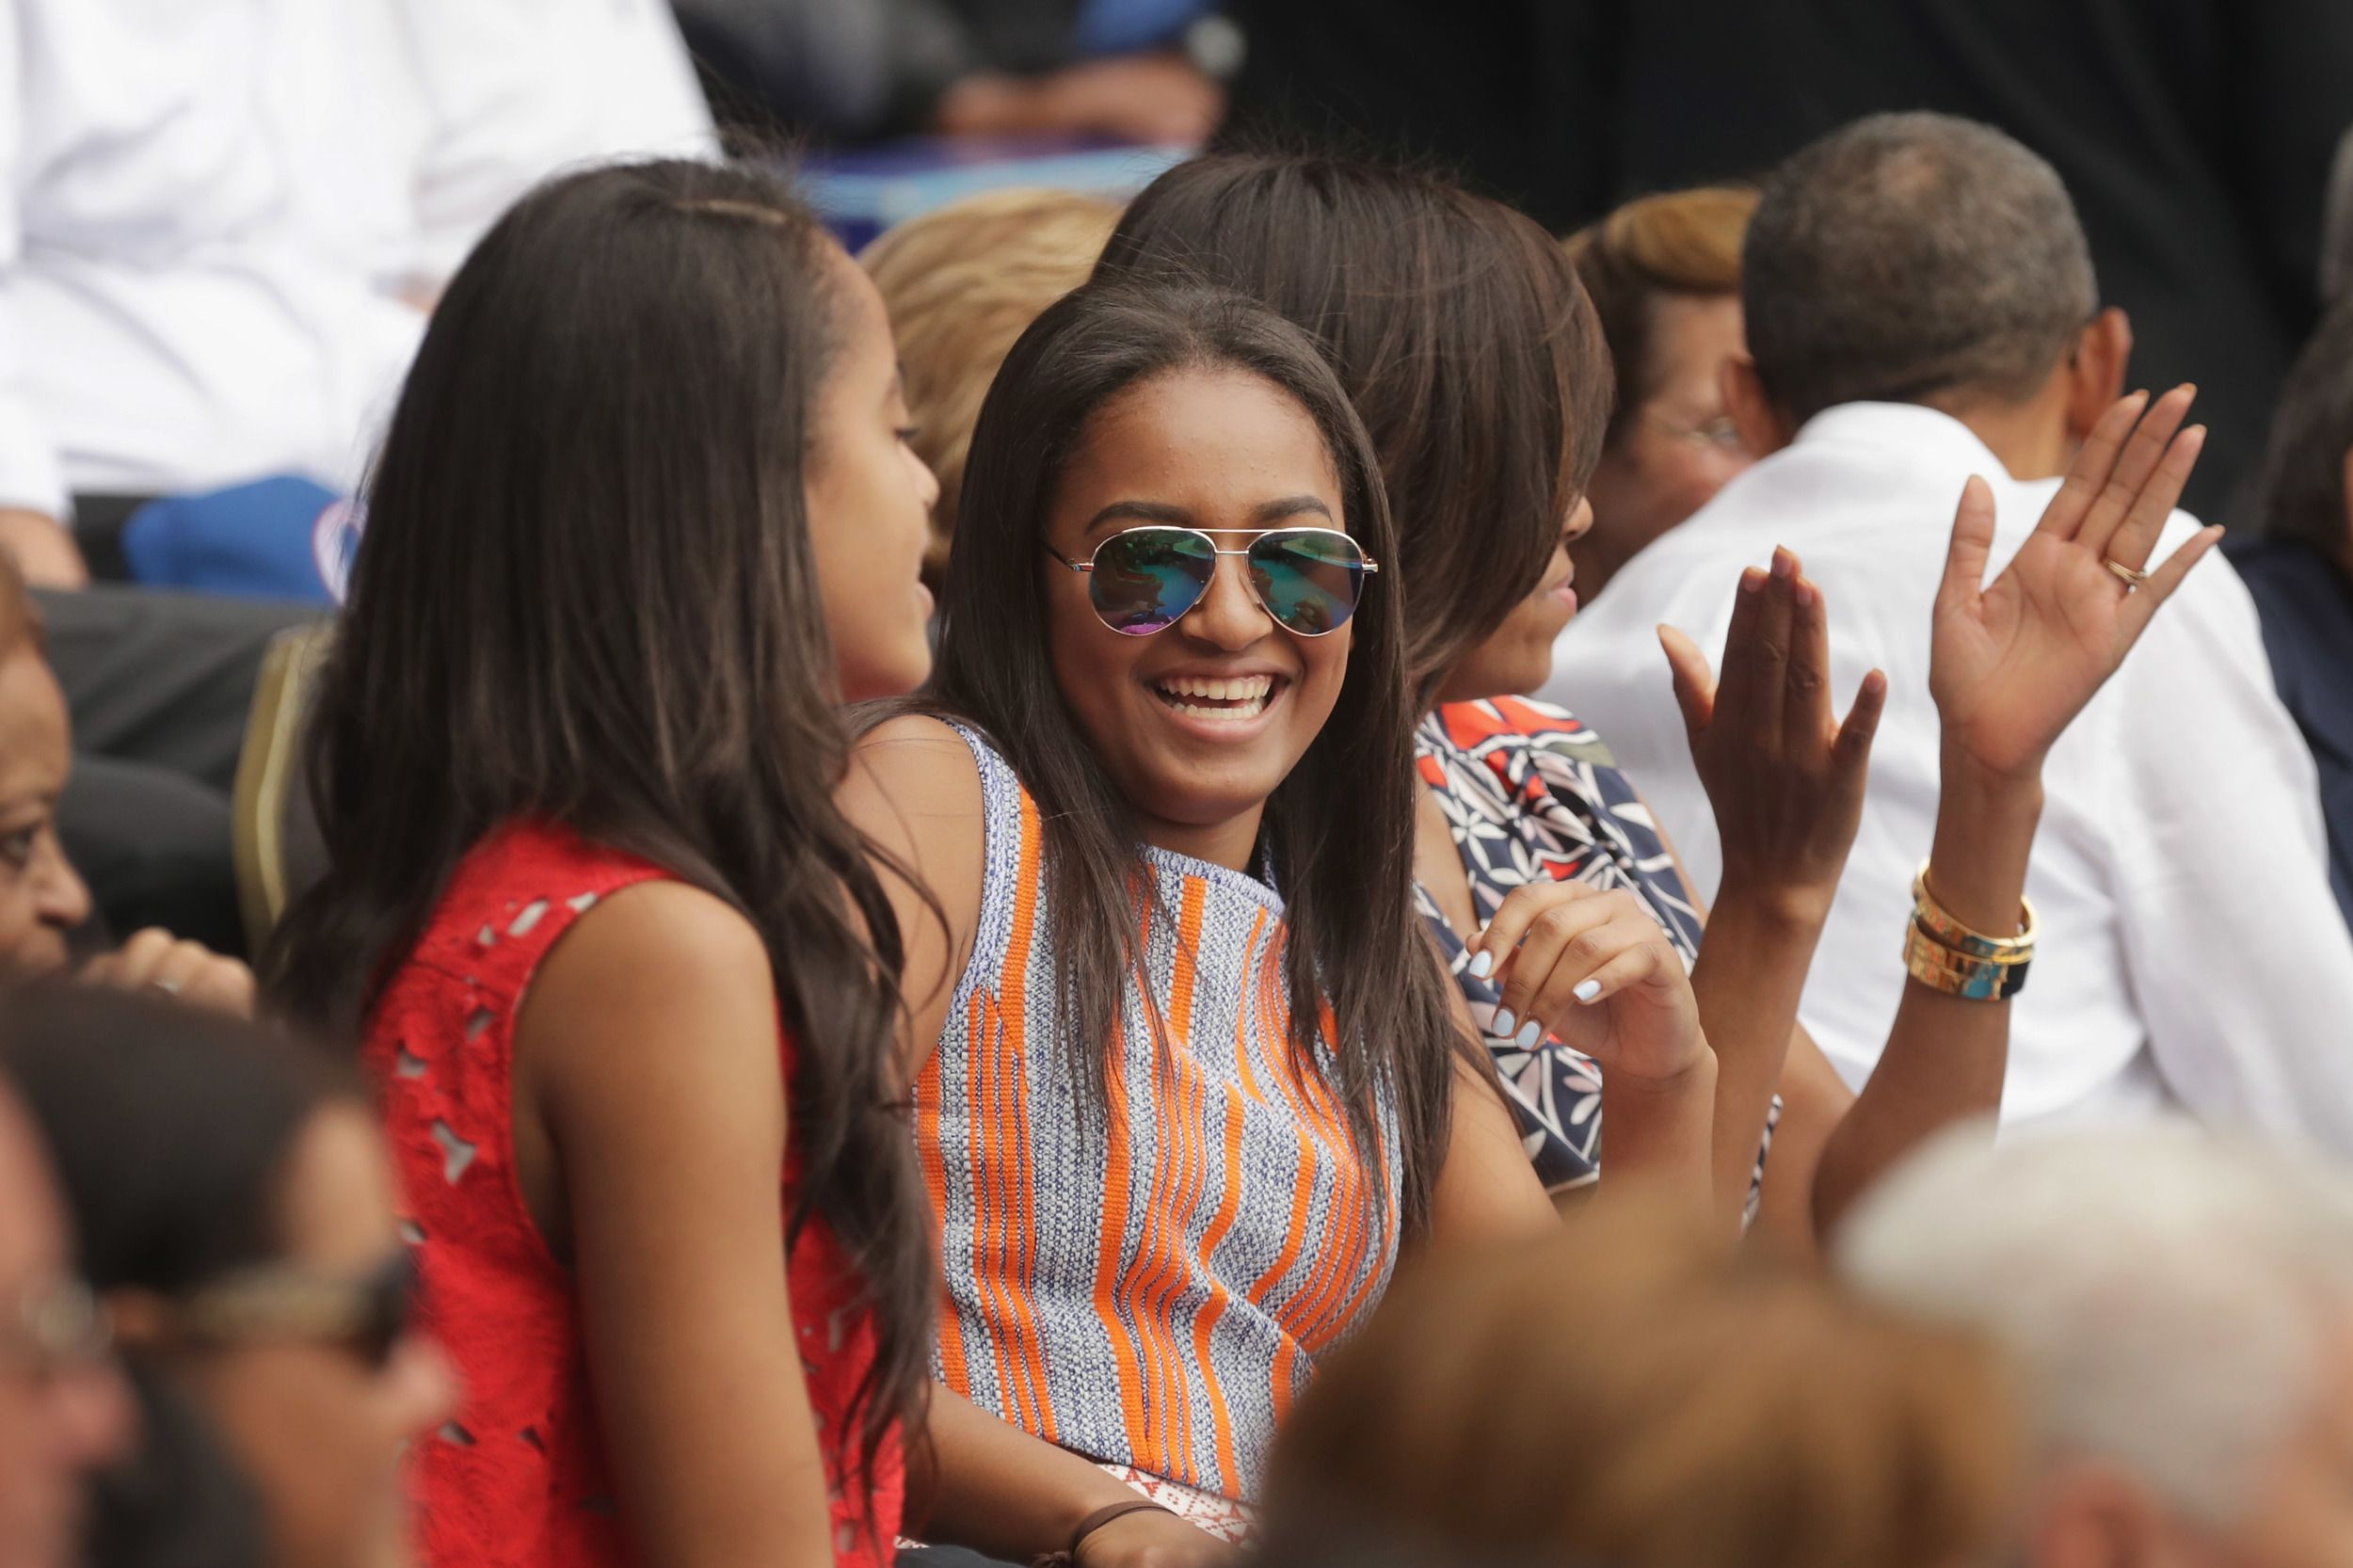 HAVANA, CUBA - MARCH 22: (L-R) Malia Obama, Sasha Obama, U.S. first lady Michelle Obama and President Barack Obama react to the first run scored during an exhibition game between the Cuban national baseball team and Major League Baseball's Tampa Bay Devil Rays at the Estado Latinoamericano March 22, 2016 in Havana, Cuba. This is the first time a sitting president has visited Cuba in 88 years. (Photo by Chip Somodevilla/Getty Images)  via @AOL_Lifestyle Read more…